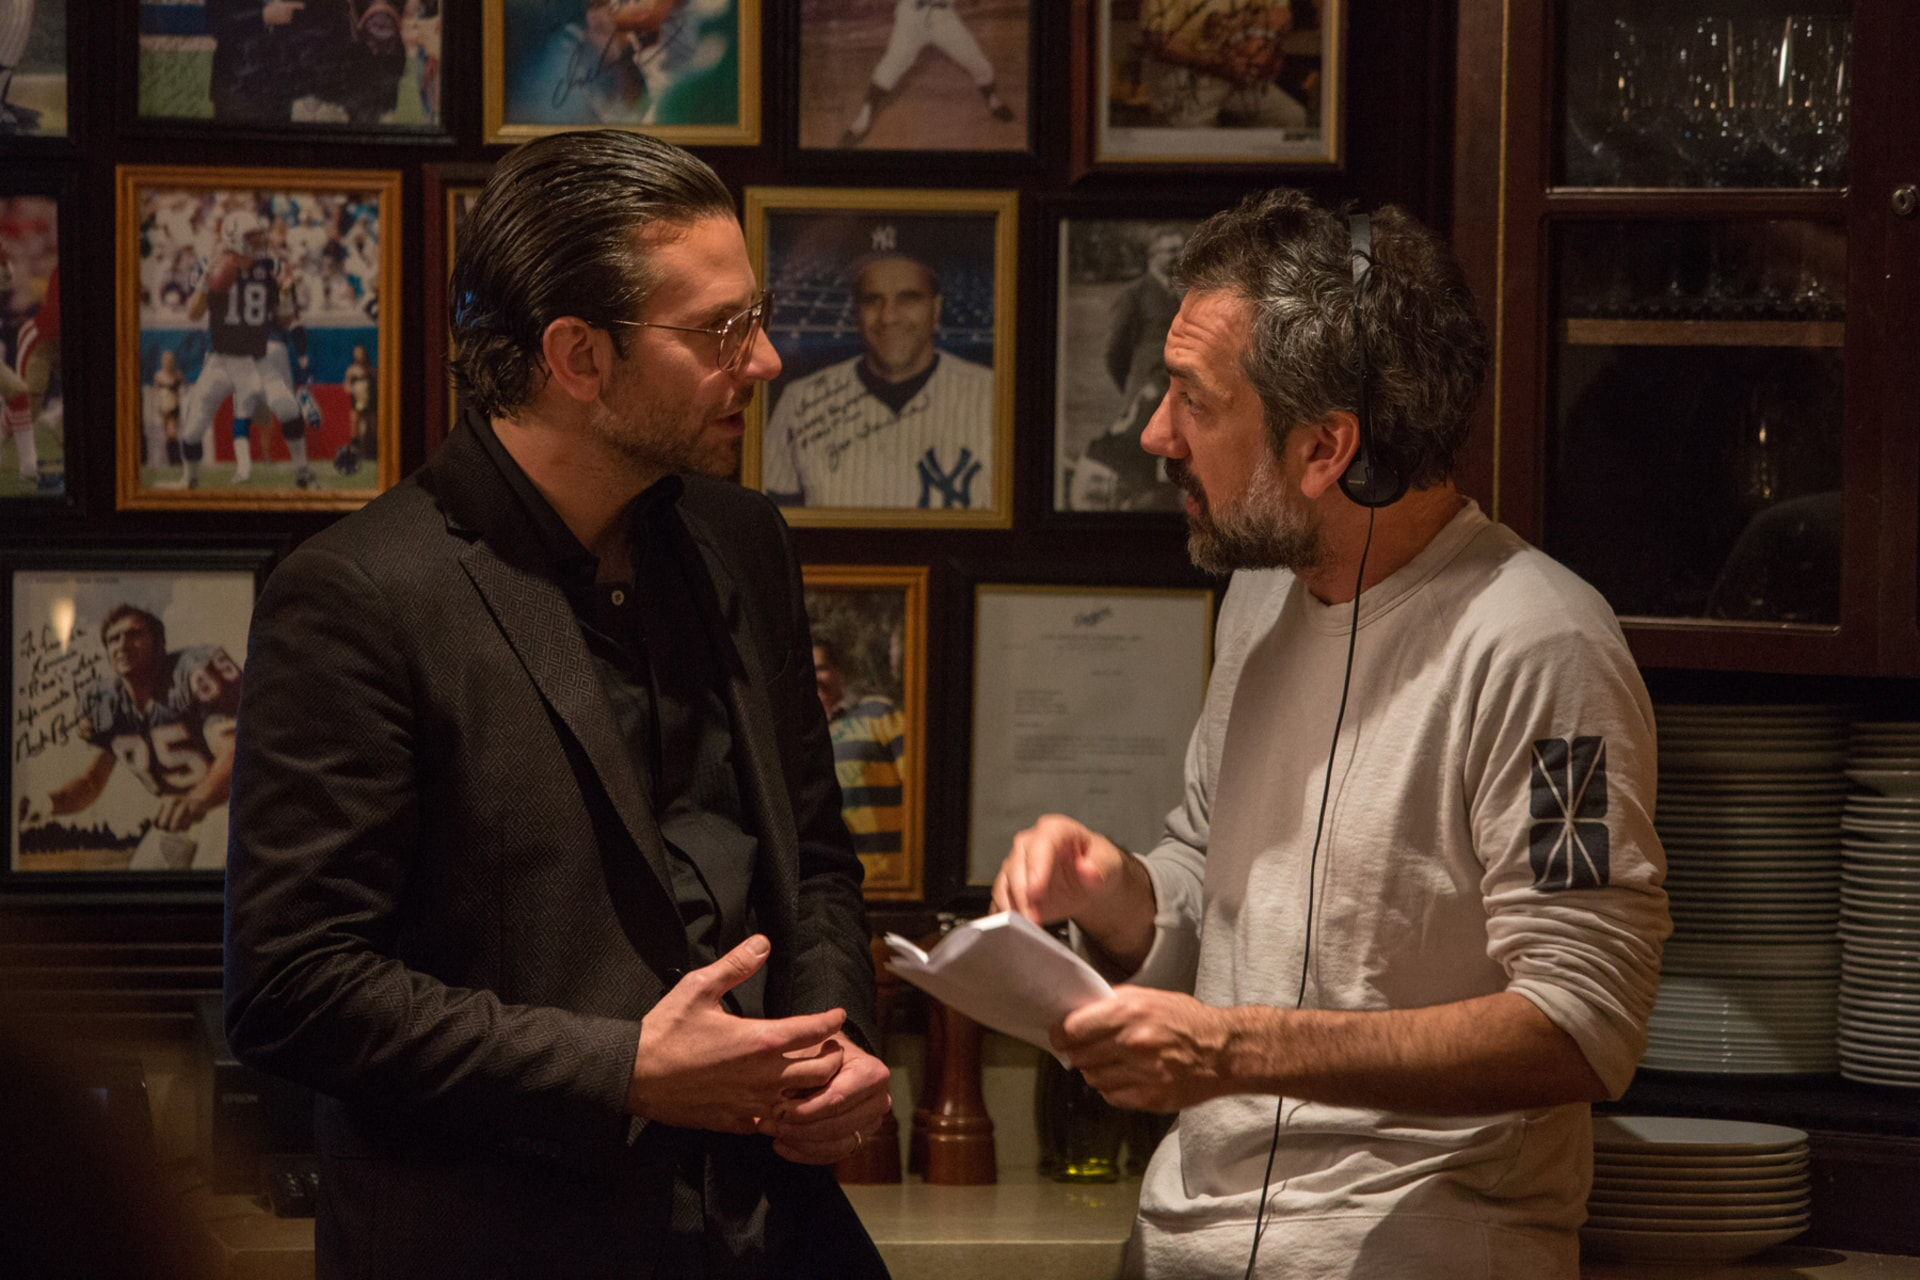 """Actor/producer BRADLEY COOPER and director/writer/producer TODD PHILLIPS on the set of Warner Bros. Pictures' comedic drama (based on true events) """"WAR DOGS,"""" a Warner Bros. Pictures release."""